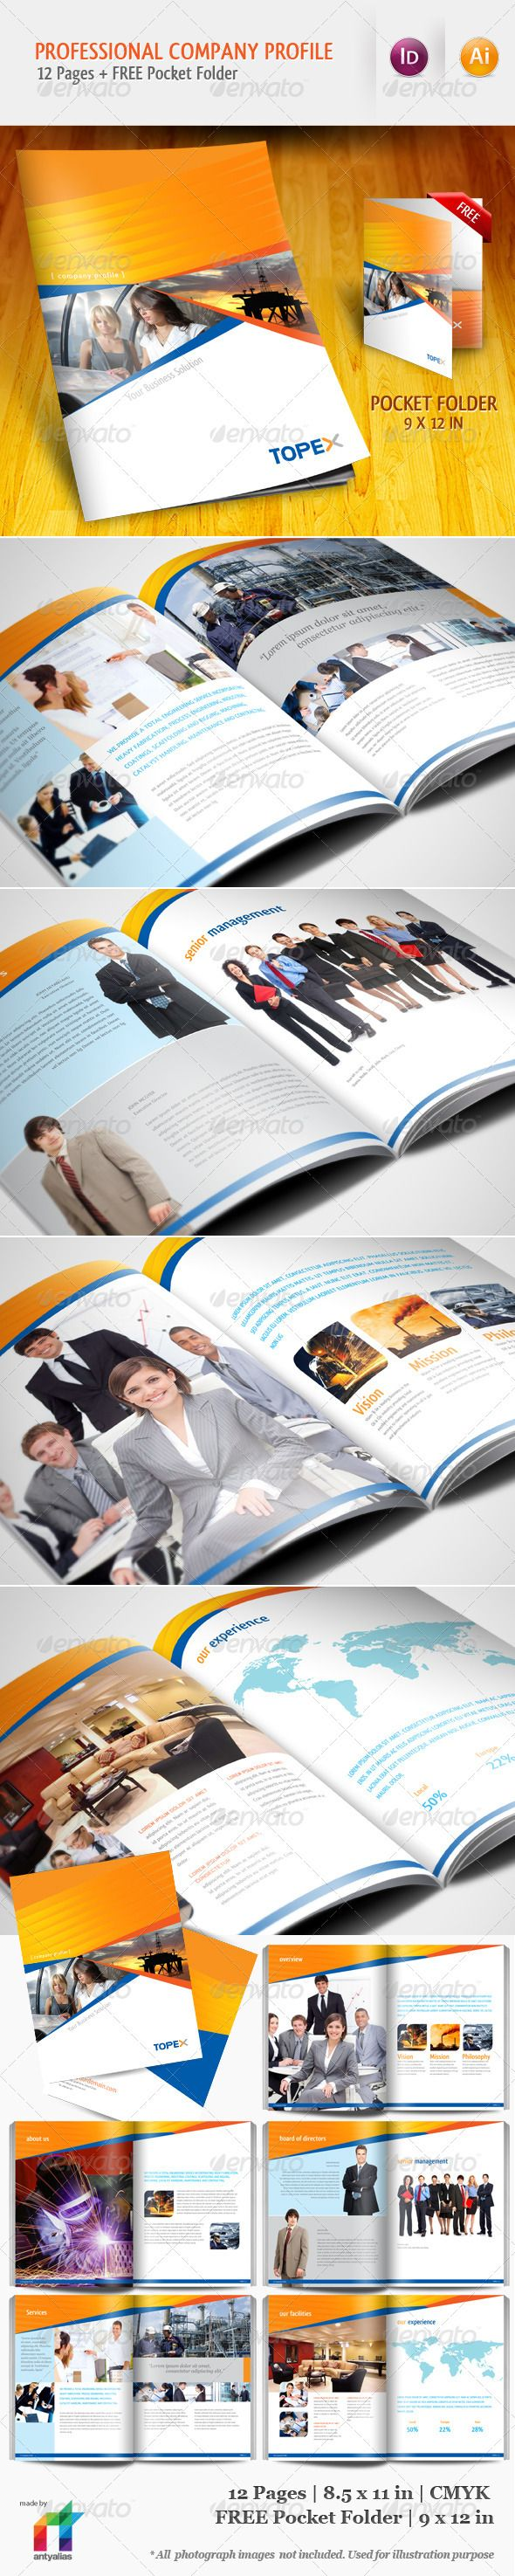 Professional Business Profile Template Best 103 Layout Images On Pinterest  Page Layout Brochure Template .